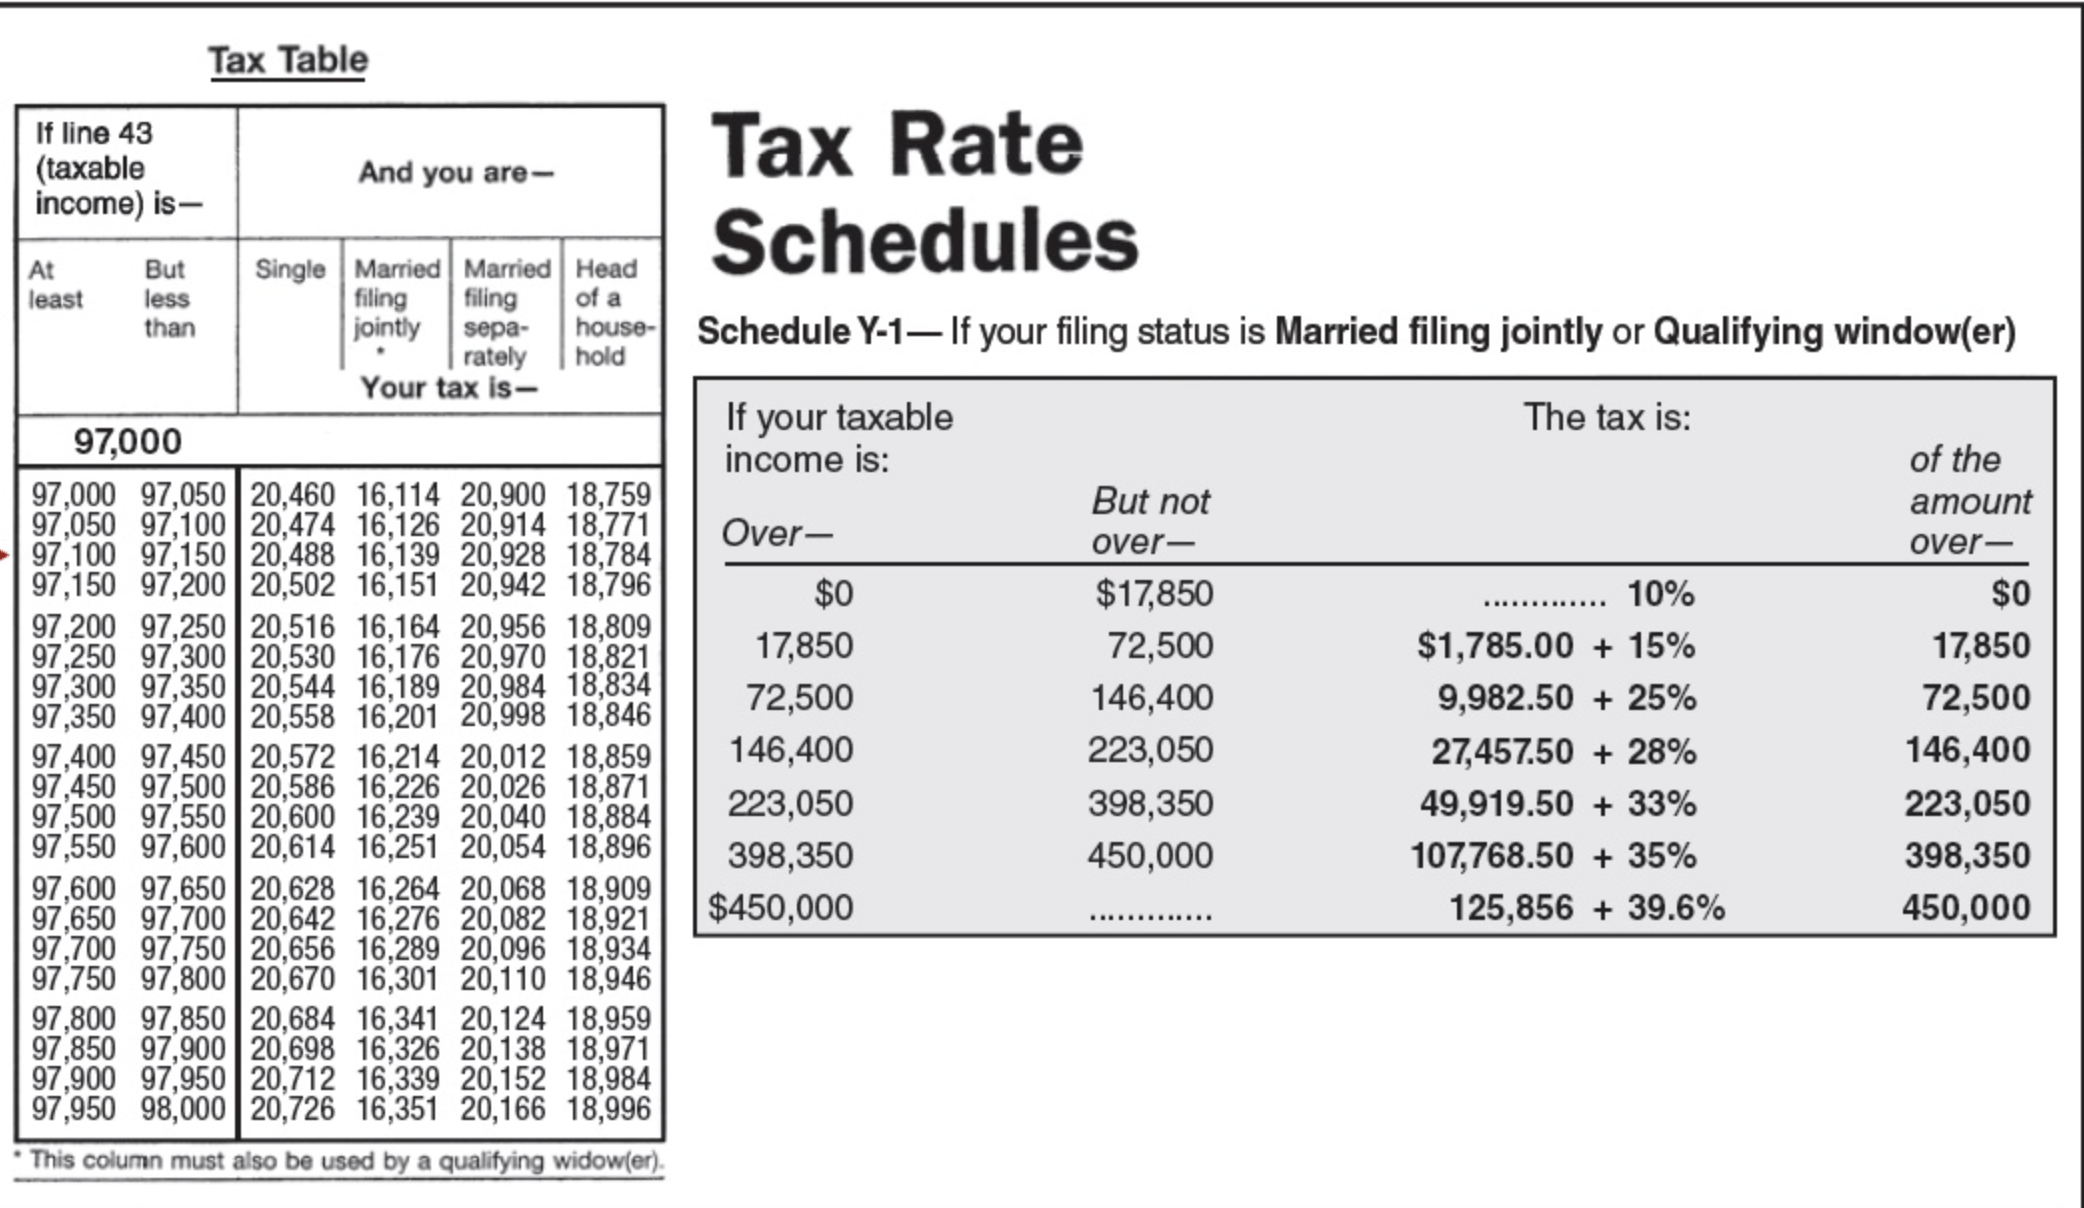 Using The Tax Table In Exhibit 3 5 Determine The Amount Of Taxes For The Following Situations